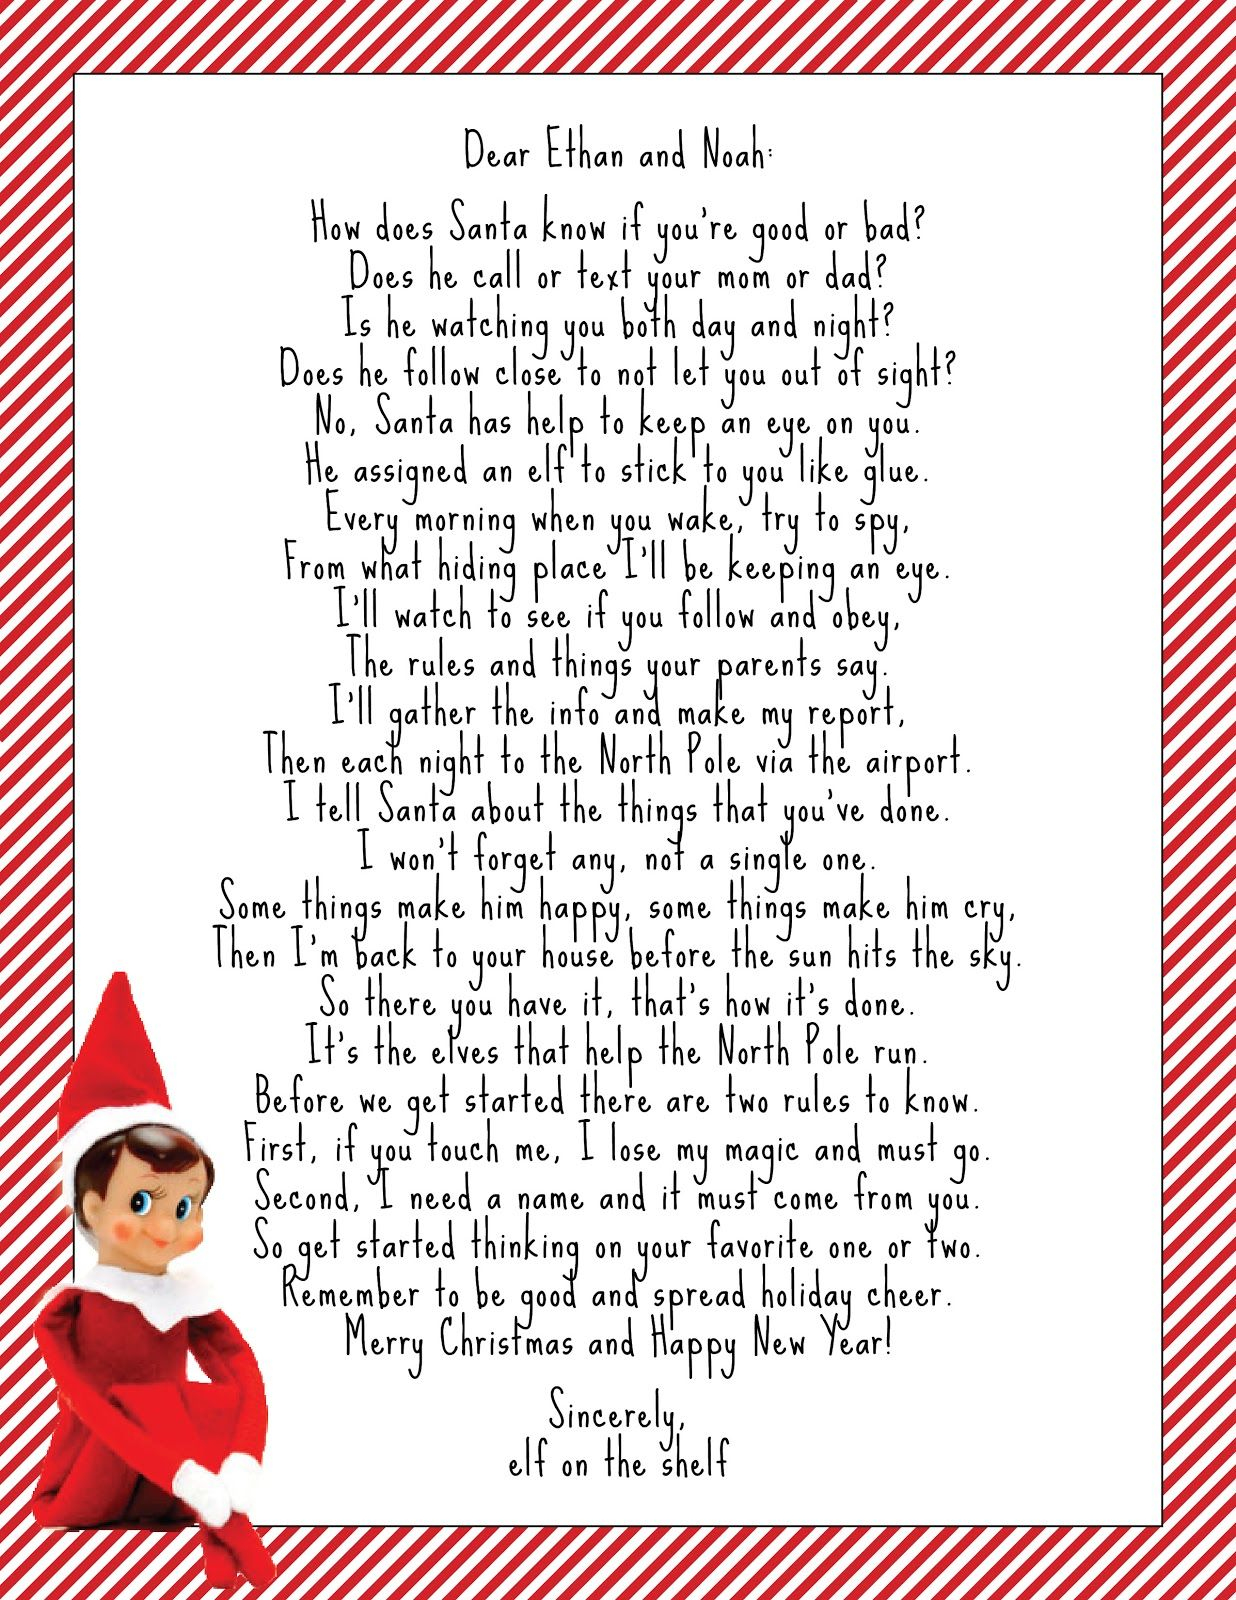 elf on the shelf letter Google Search Elf on